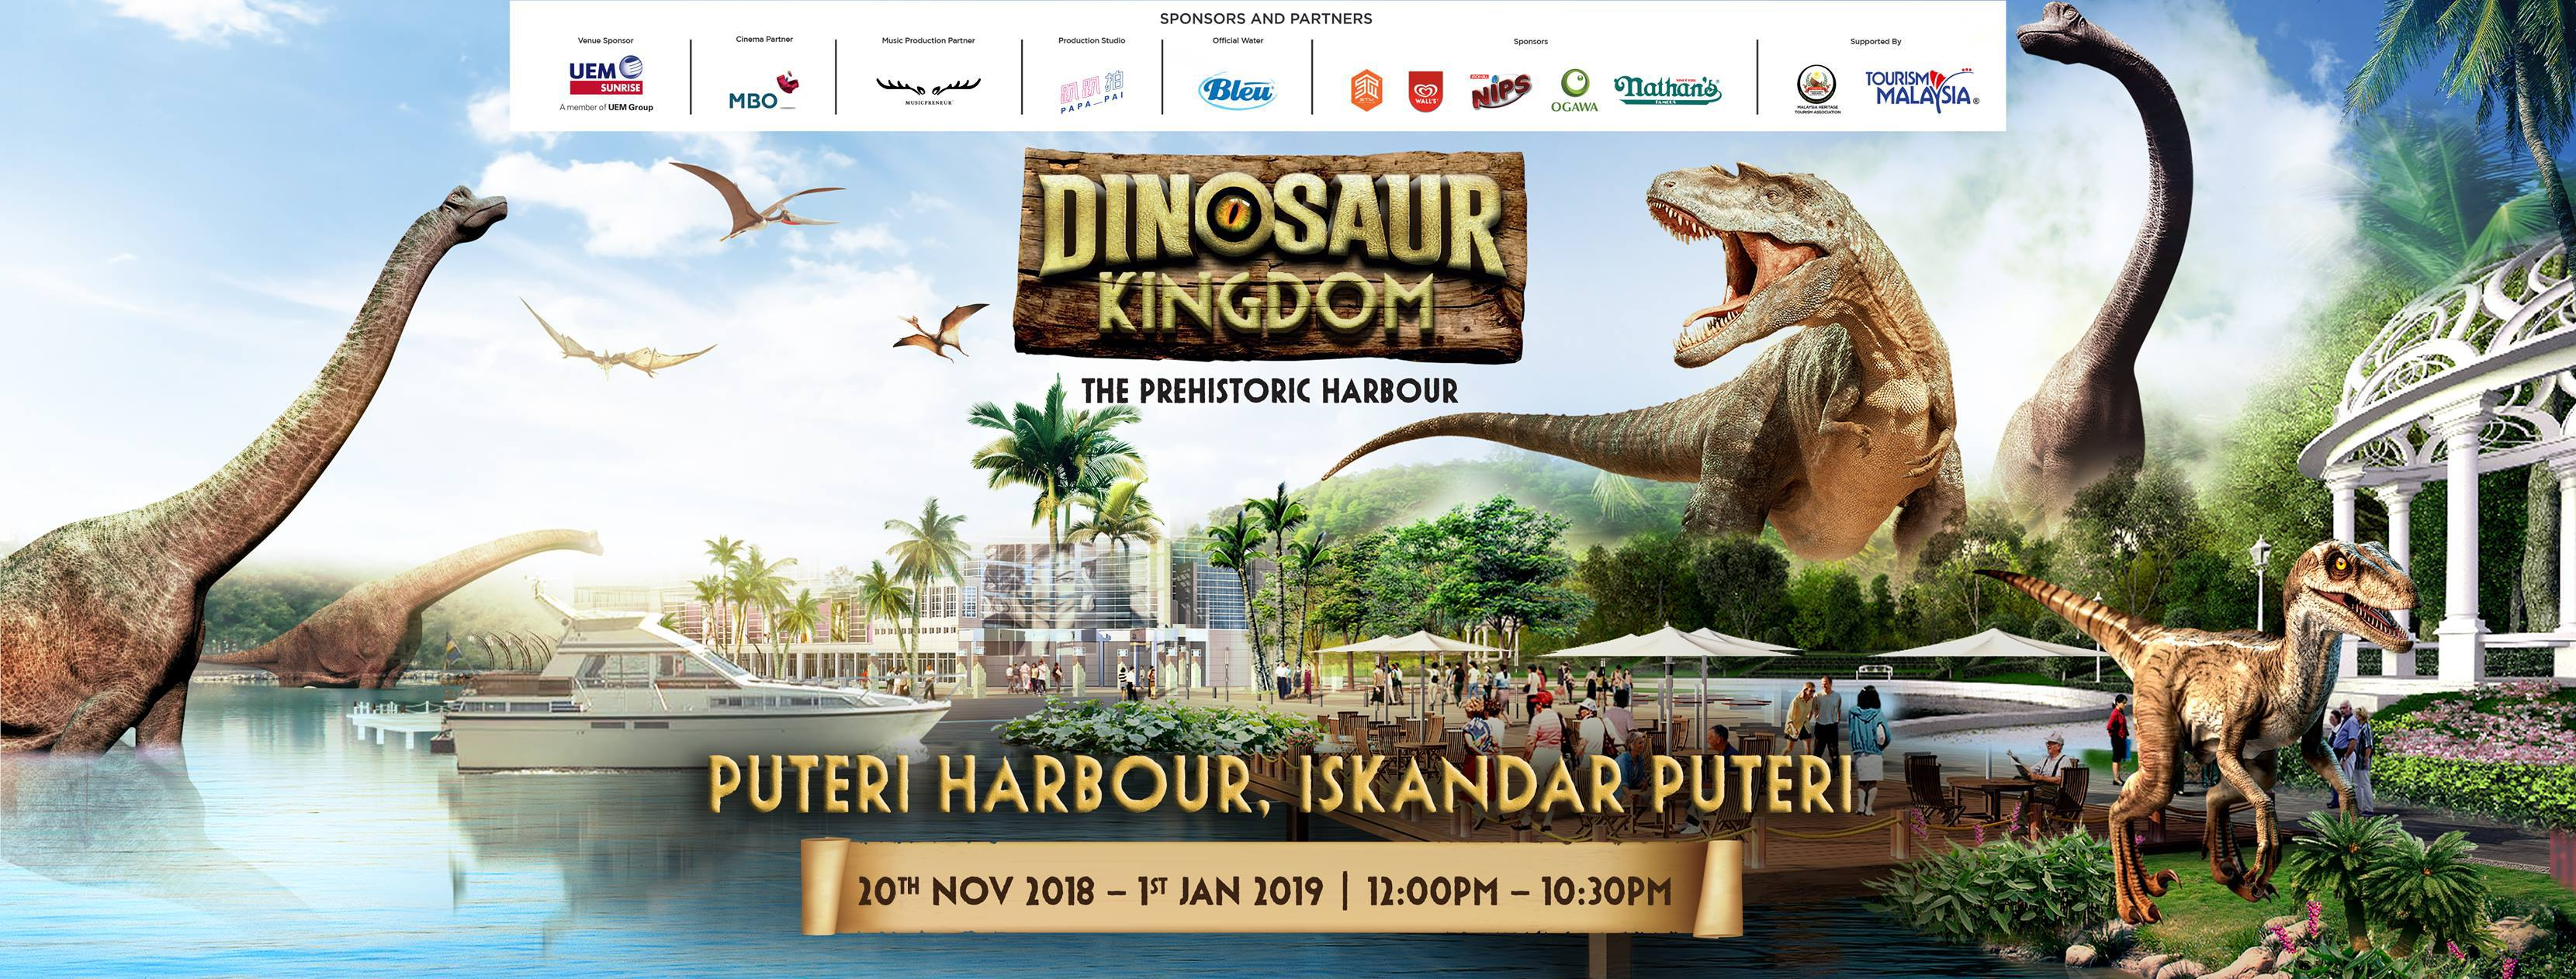 Jom Ke Dinosaur Kingdom, Puteri Harbour 20 Nov 2018 – 1 Jan 2019